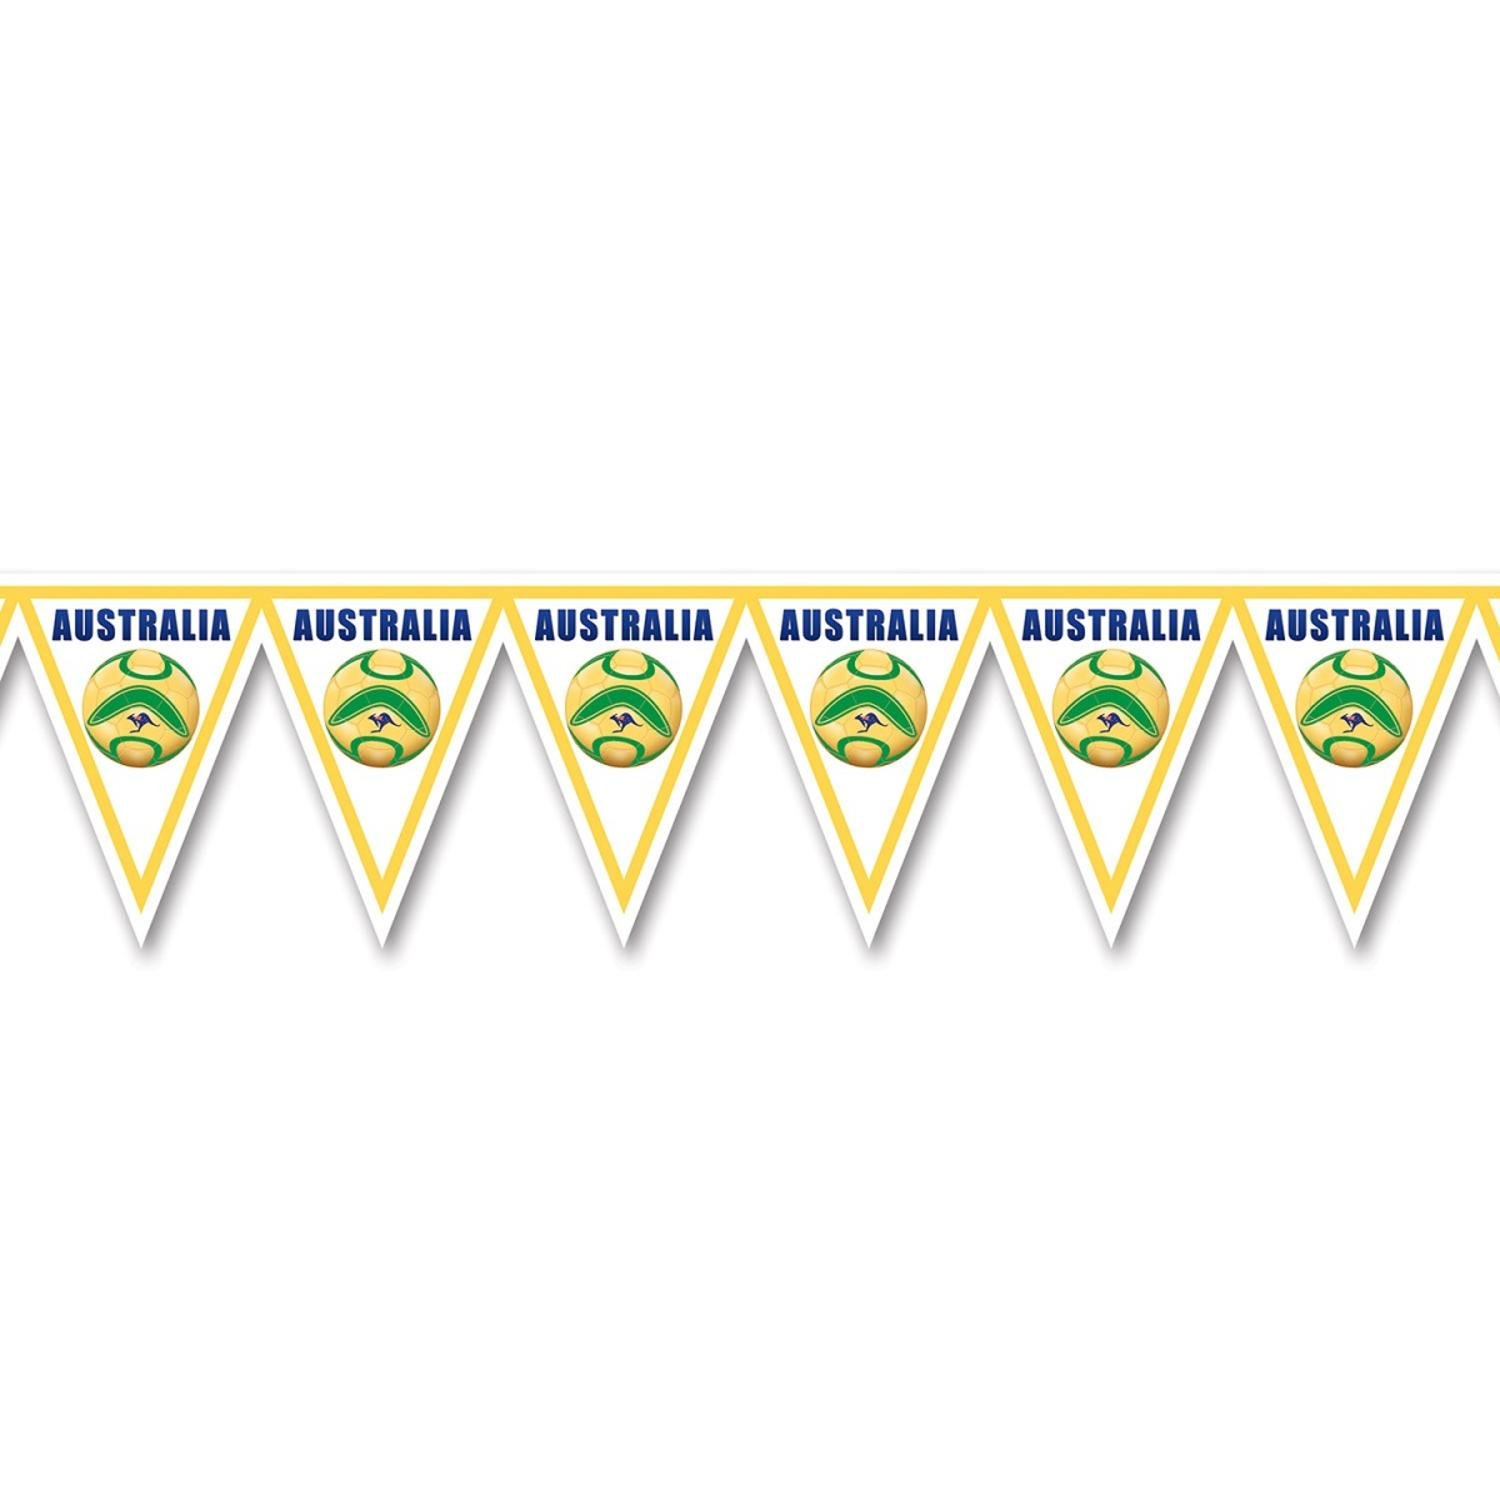 Pack of 6 Green, Yellow and White ''Australia'' Soccer Themed Pennant Banner Party Decorations 7.4' by Party Central